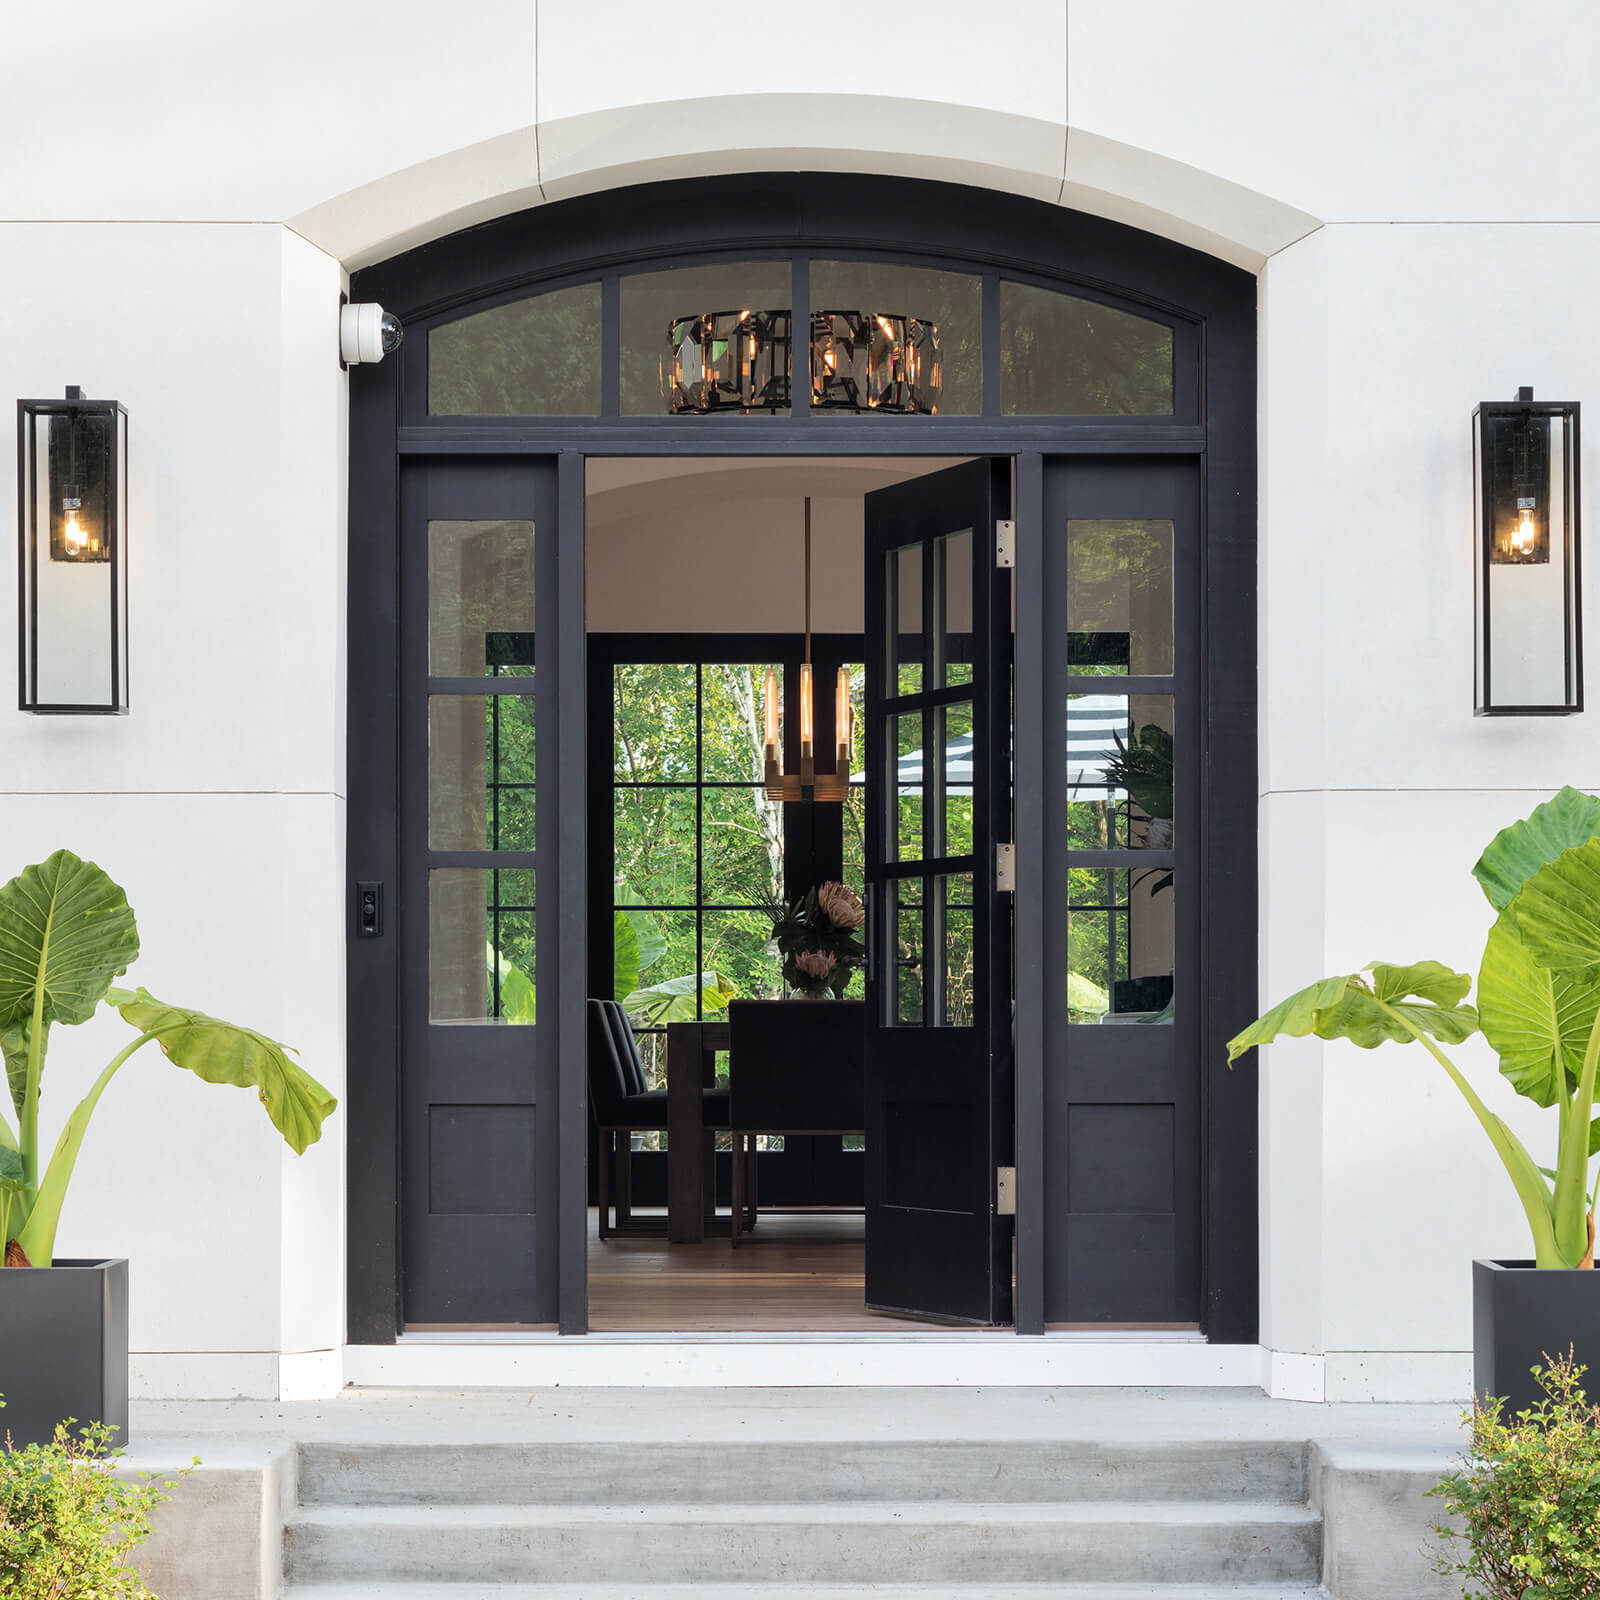 Exterior entrance of traditional style home with Marvin Signature Ultimate Inswing French Door